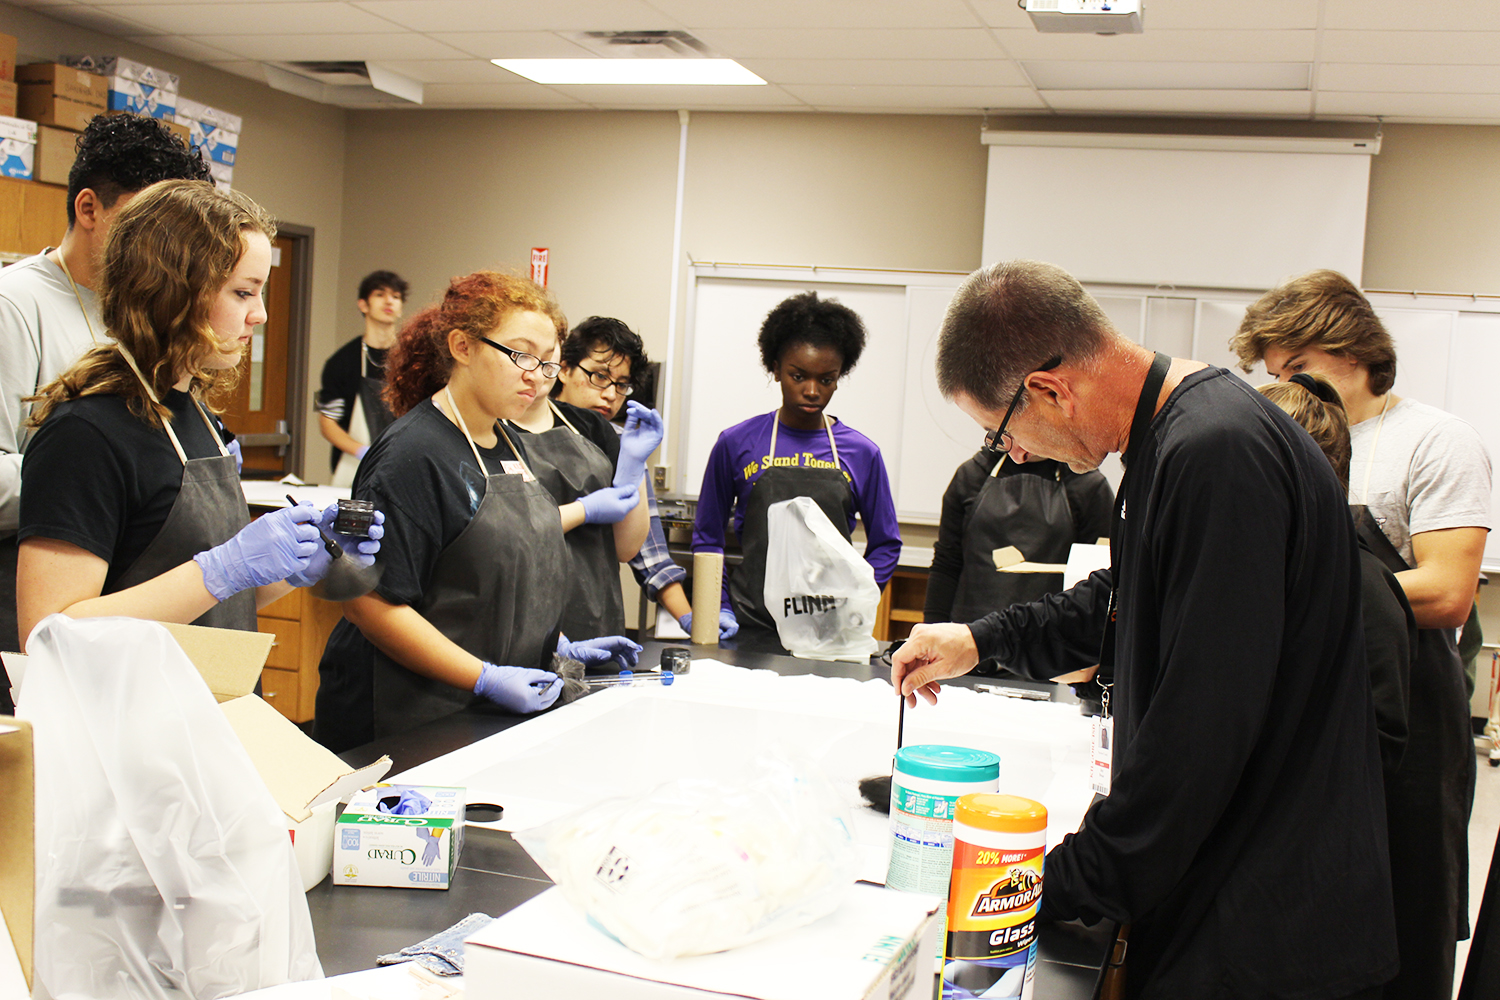 Coach Dean's forensic science class watches and learns how to properly dust for fingerprints.